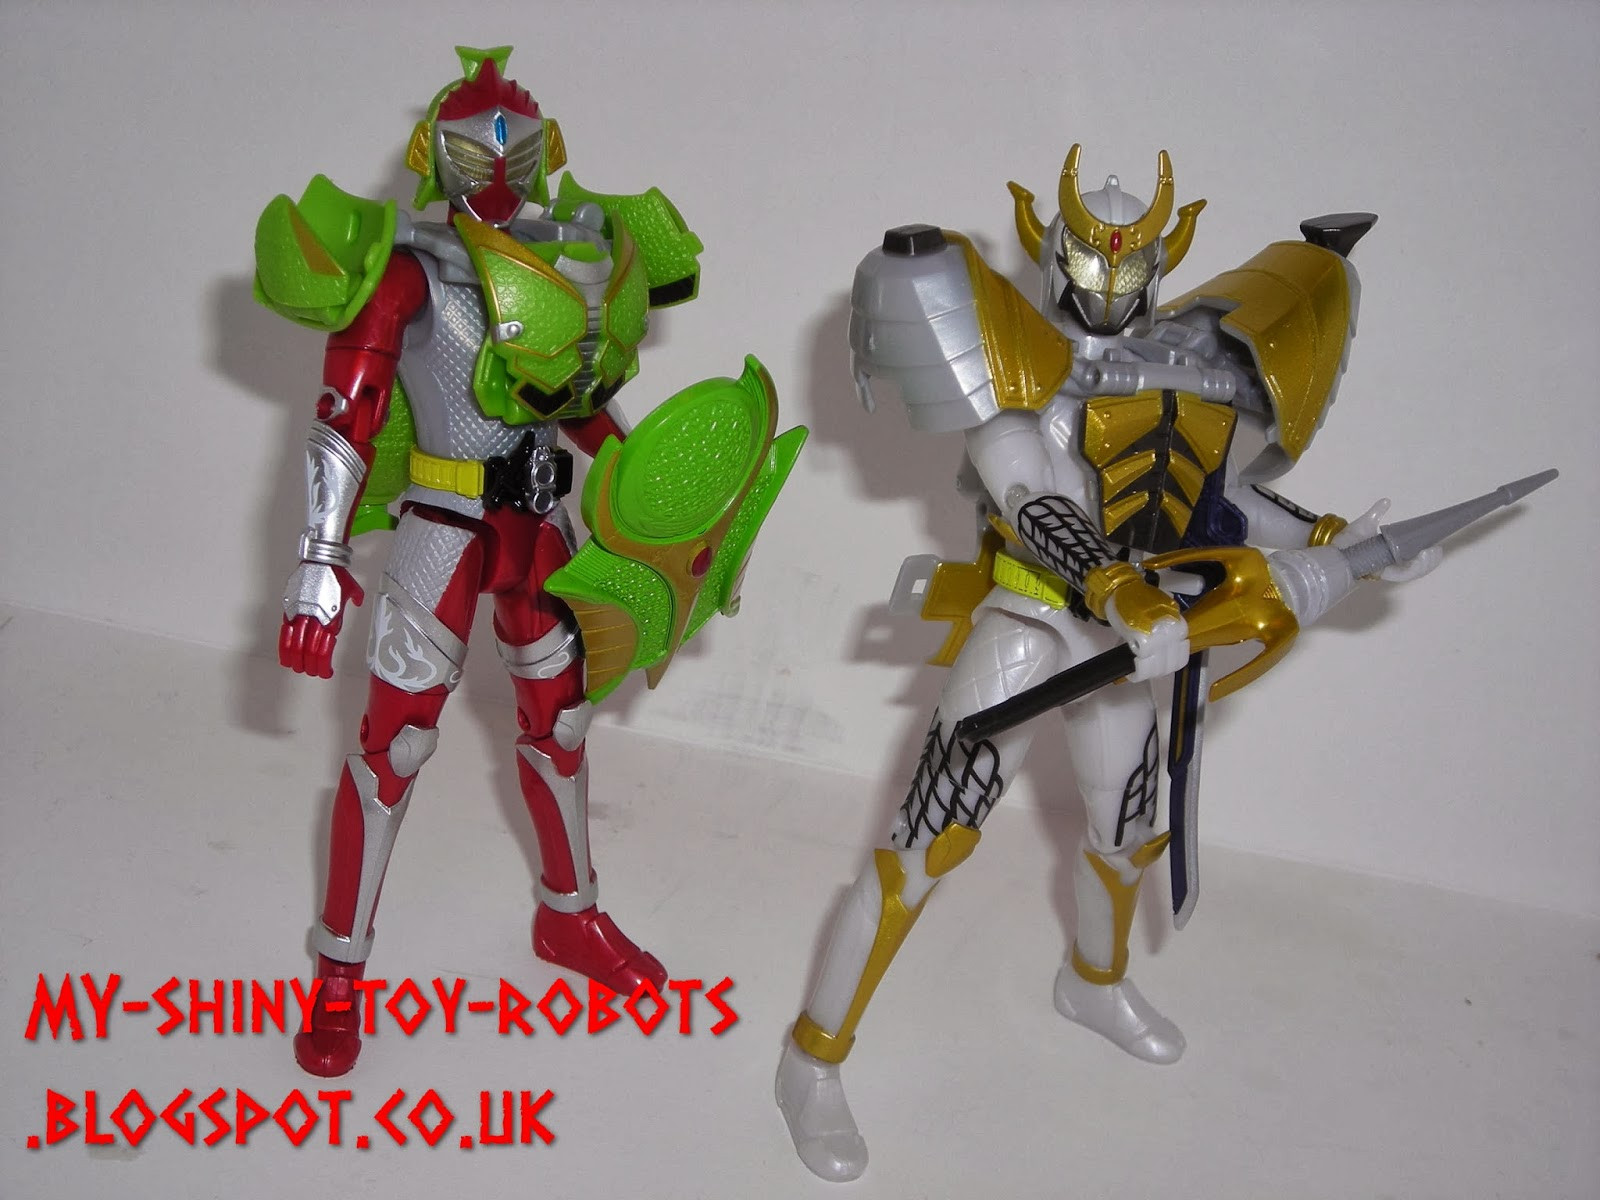 Zangetsu Banana Arms = Awesome